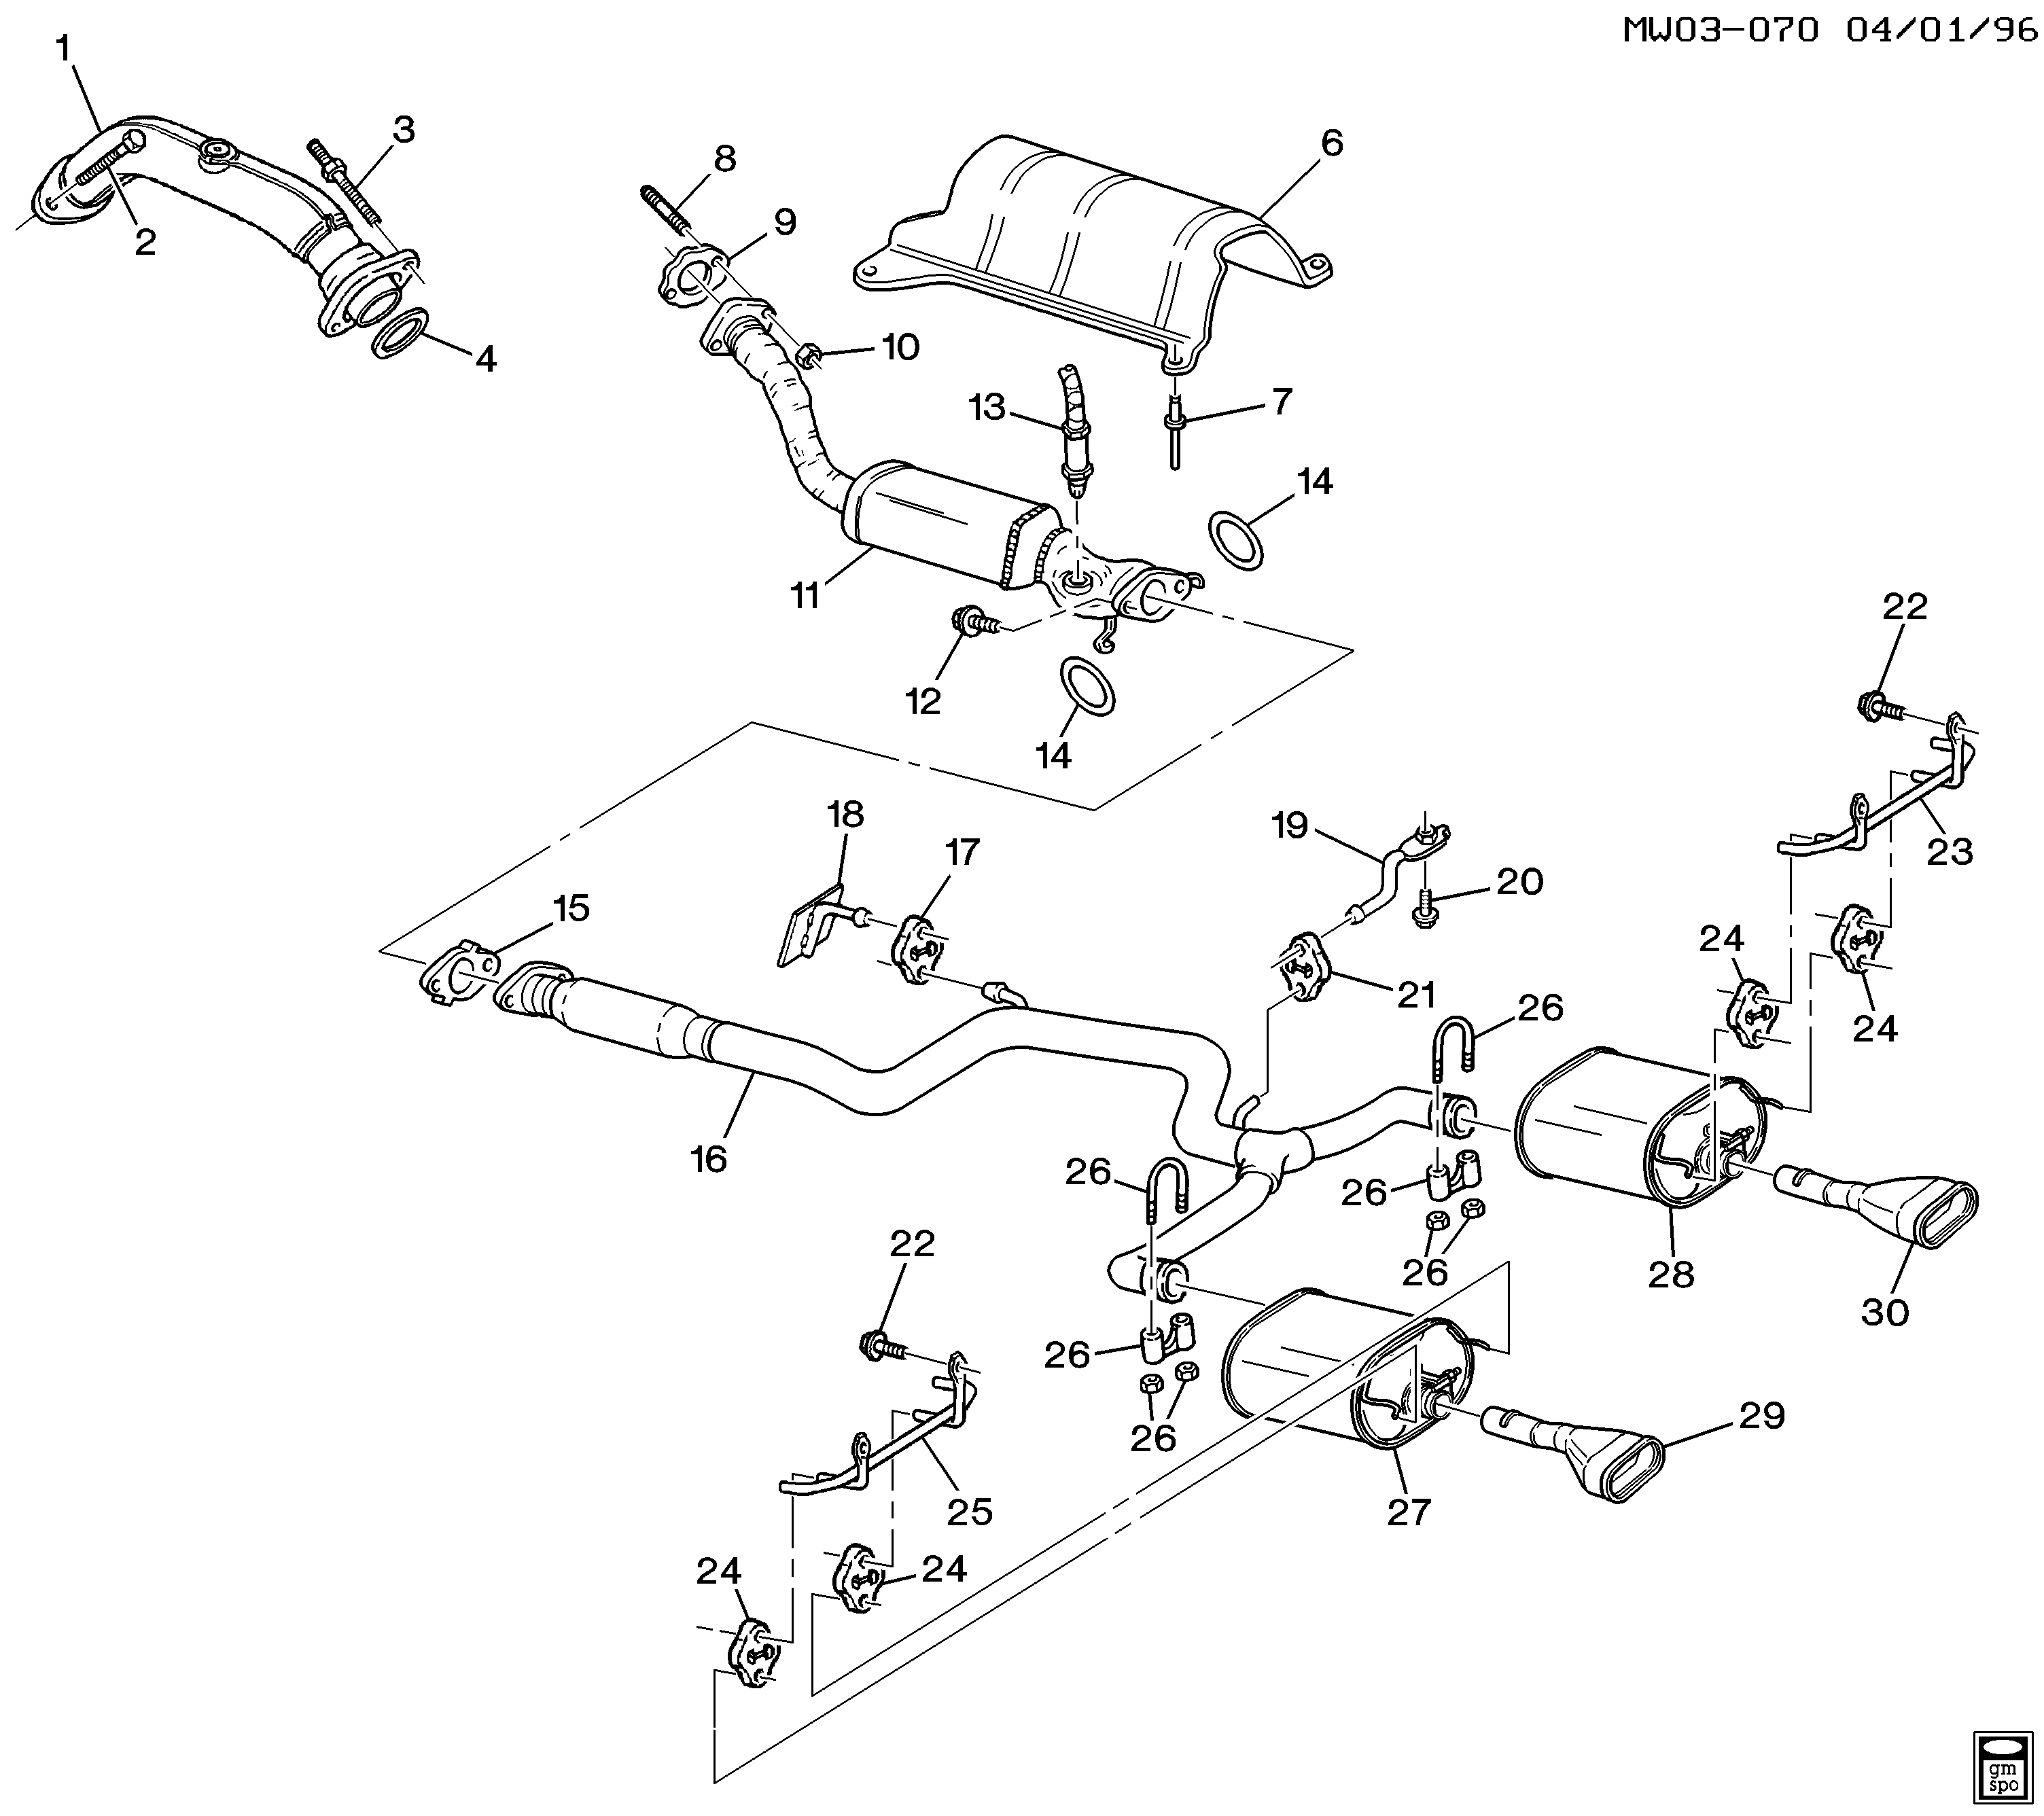 Pontiac Grand Prix Exhaust System Diagram